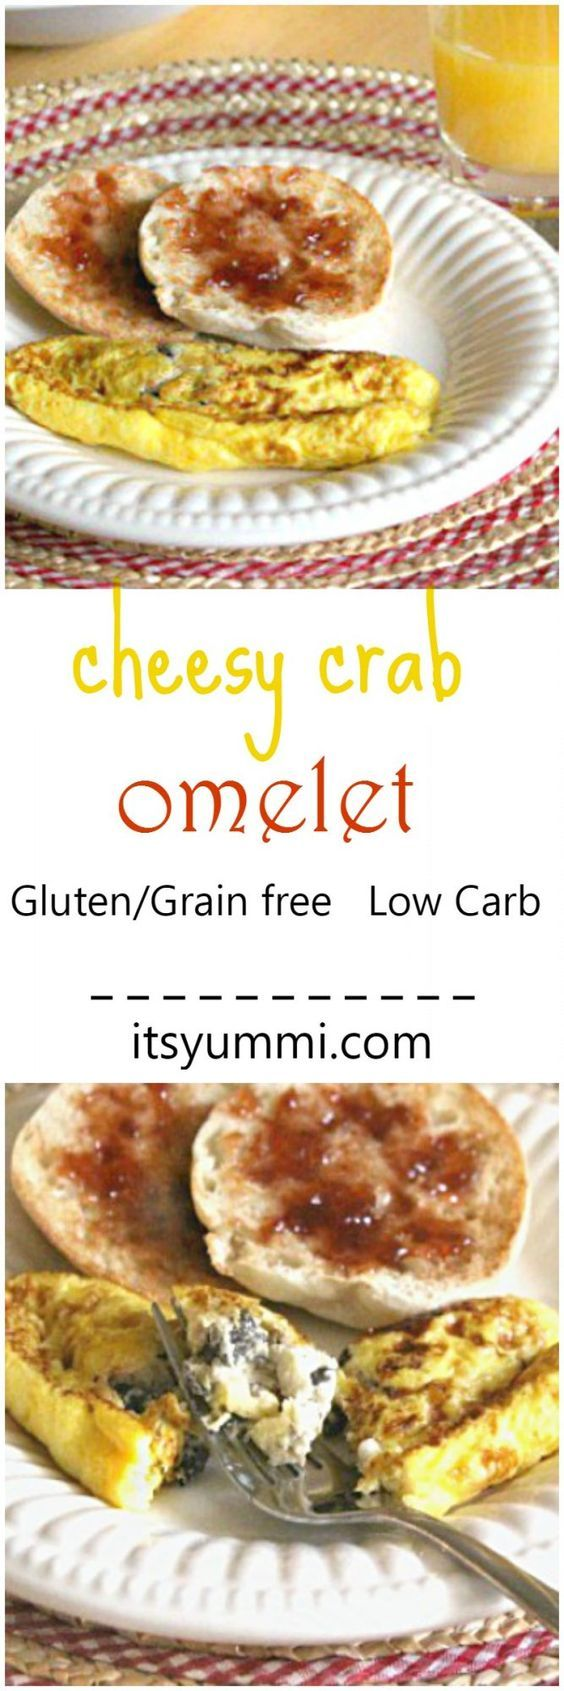 ... crab meat lemon crab salad omelet recipes dishmaps crab salad omelet